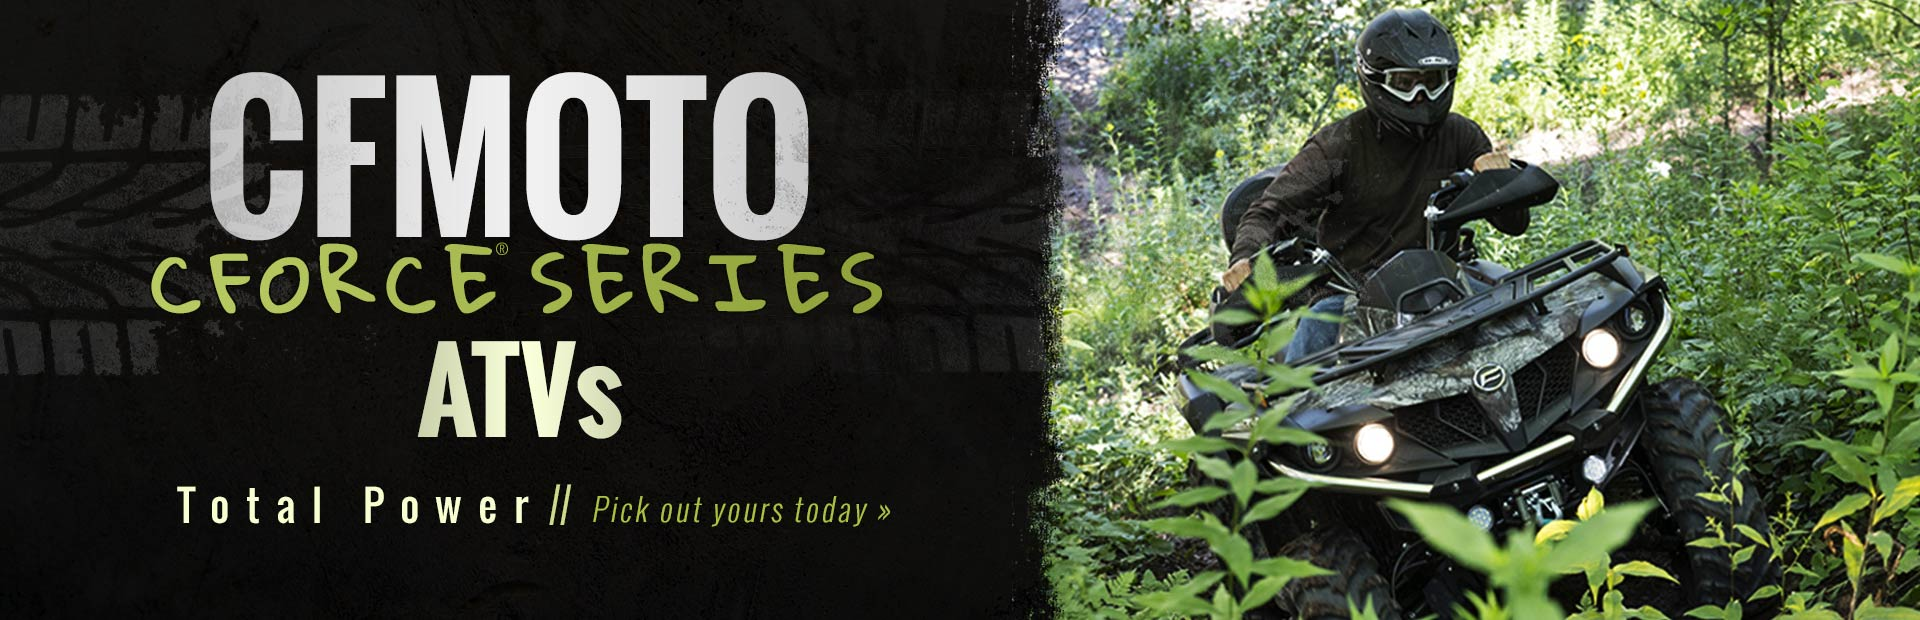 CFMOTO CFORCE® Series ATVs: Click here to view the lineup.